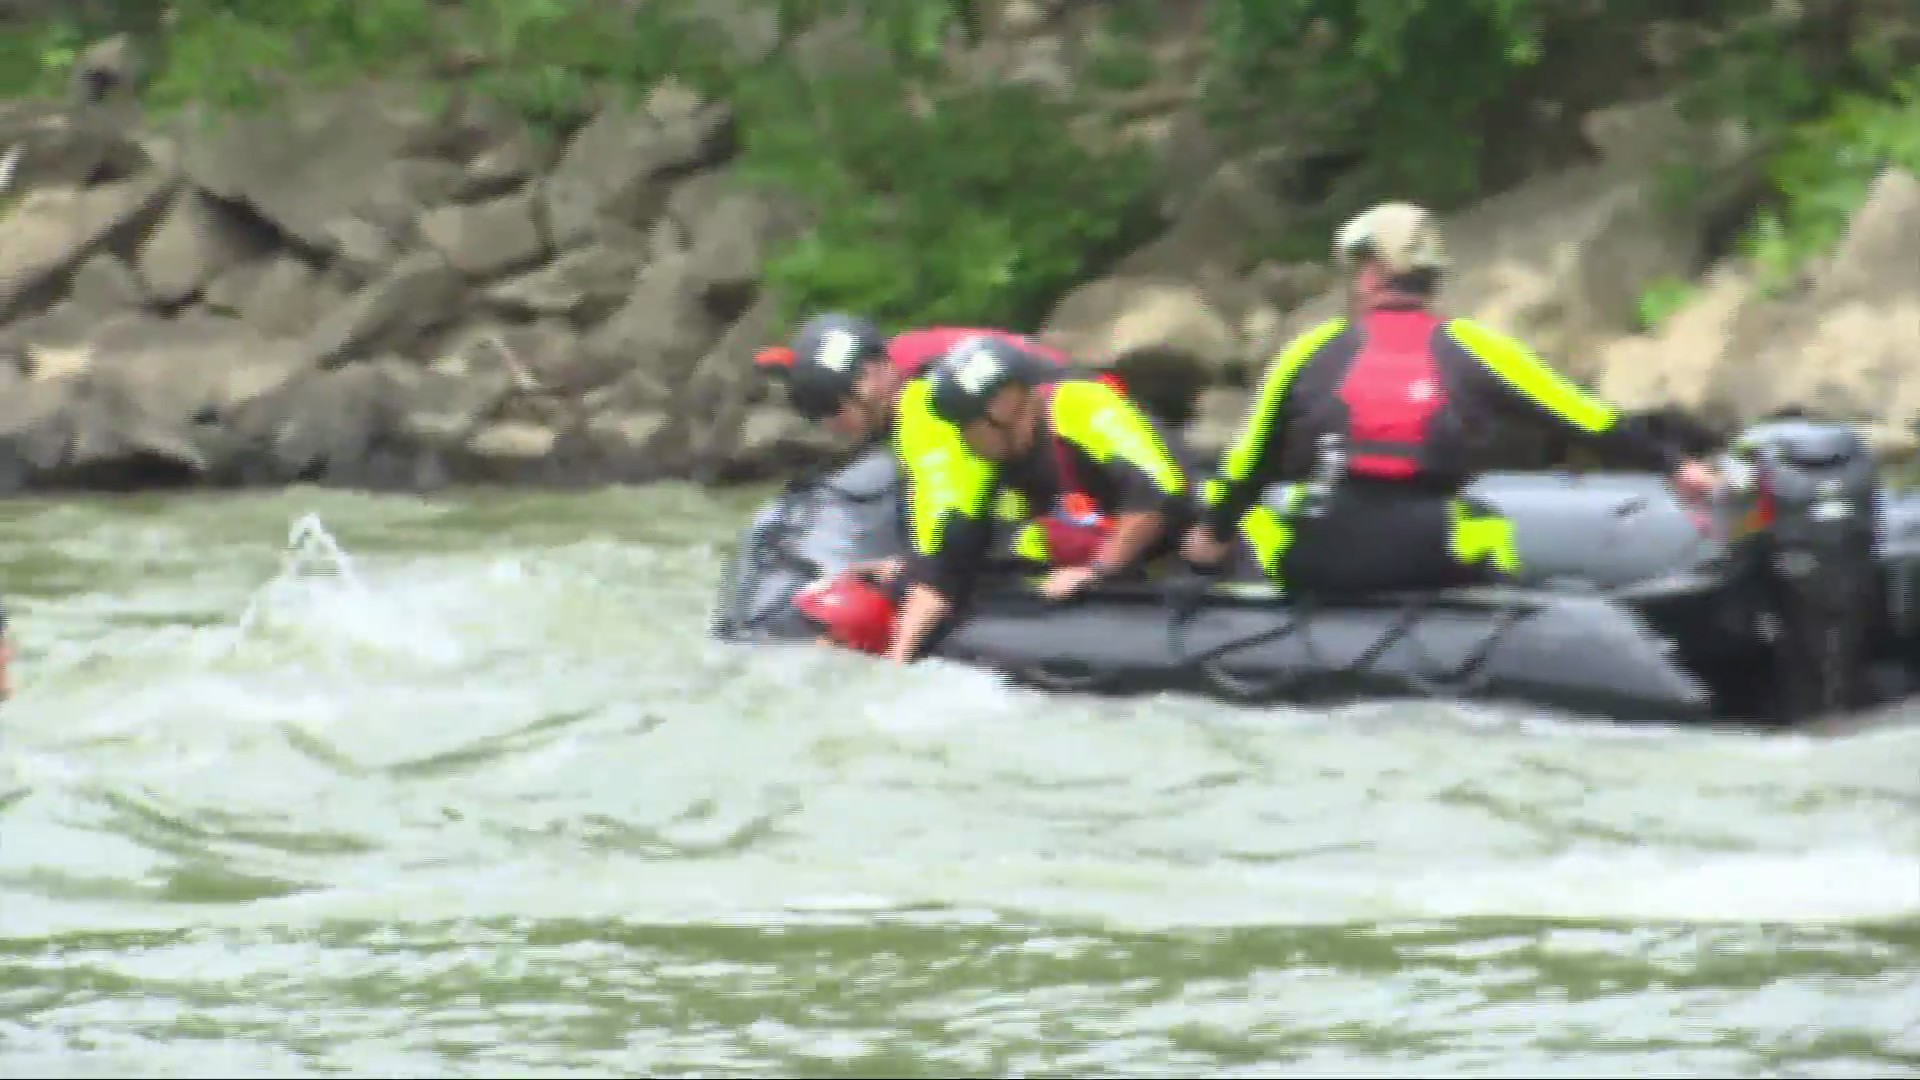 First responders train for swift water rescue on New River